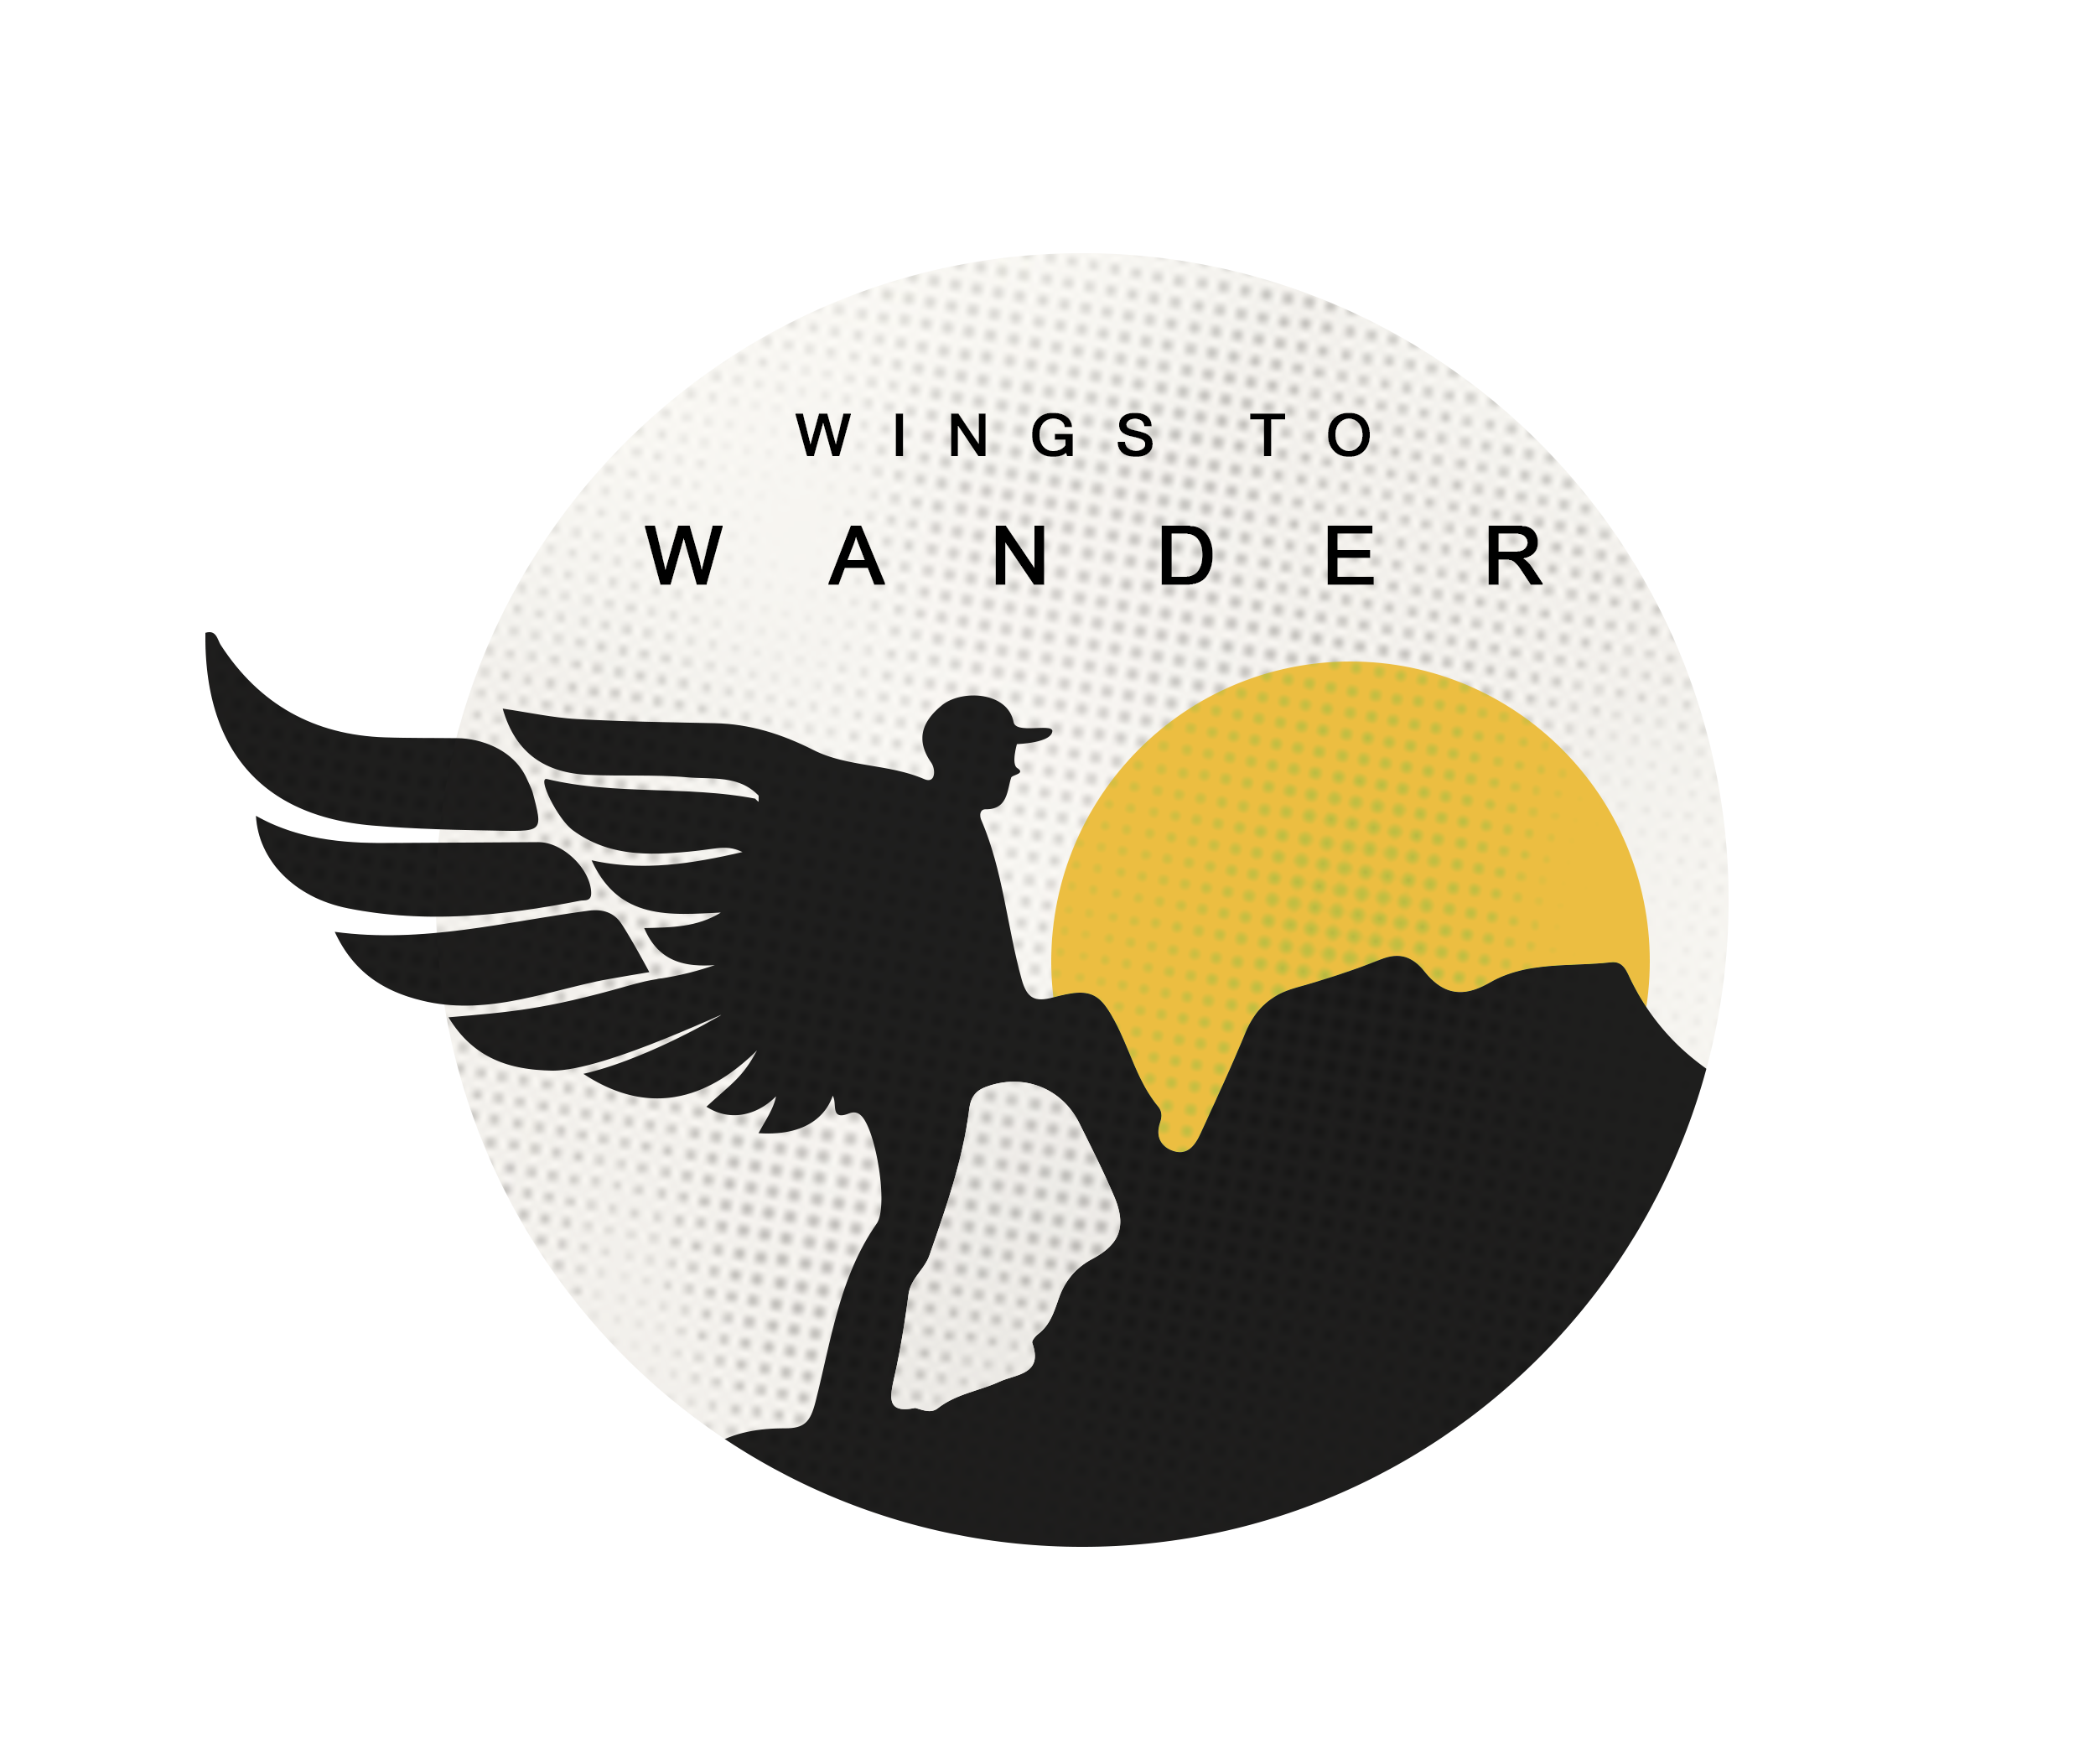 wingstowander